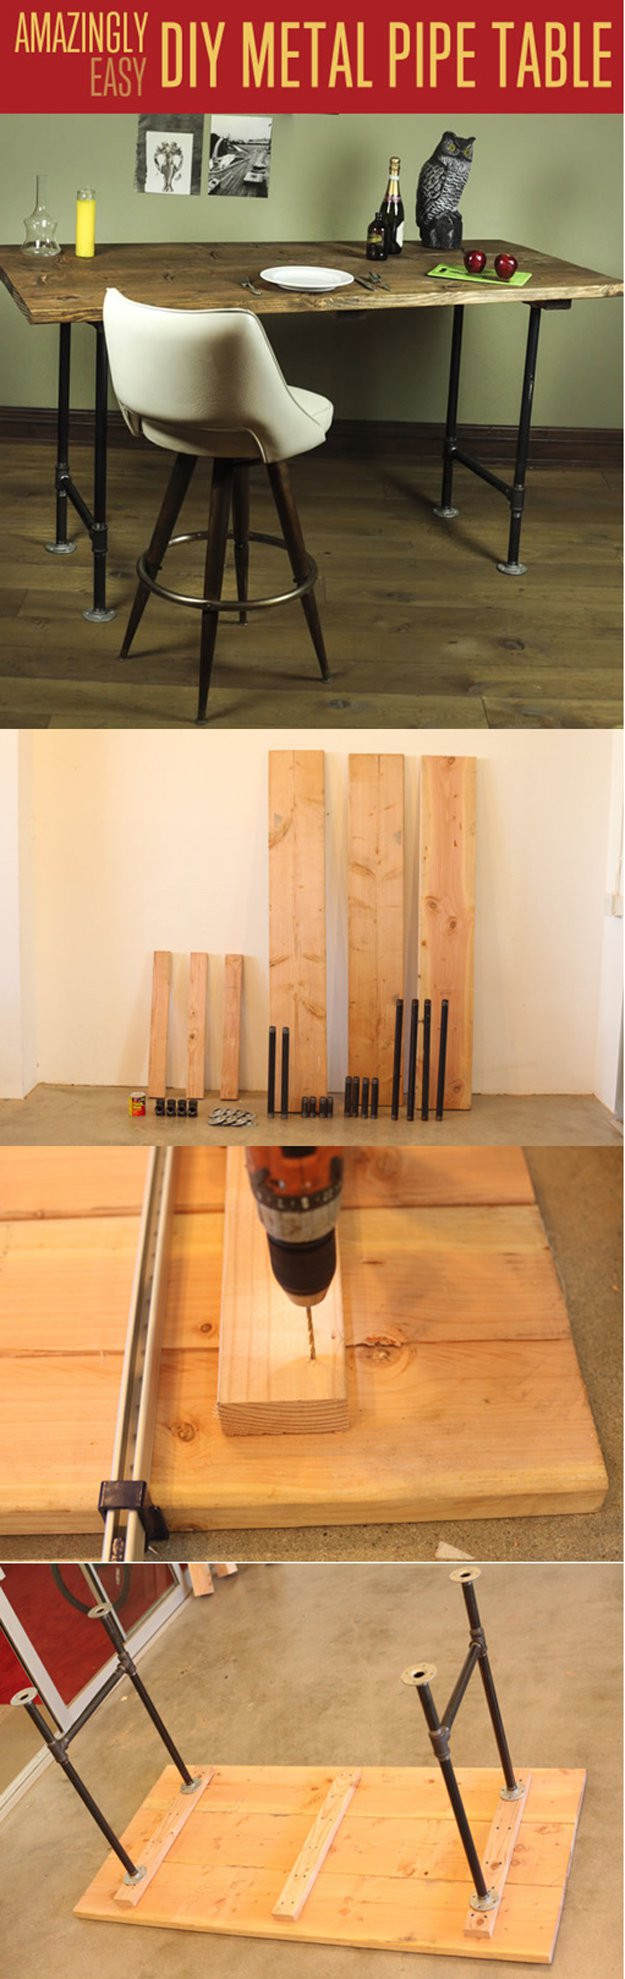 Best ideas about Easy DIY Wood Projects . Save or Pin Easy Woodworking Projects Craft Ideas Now.